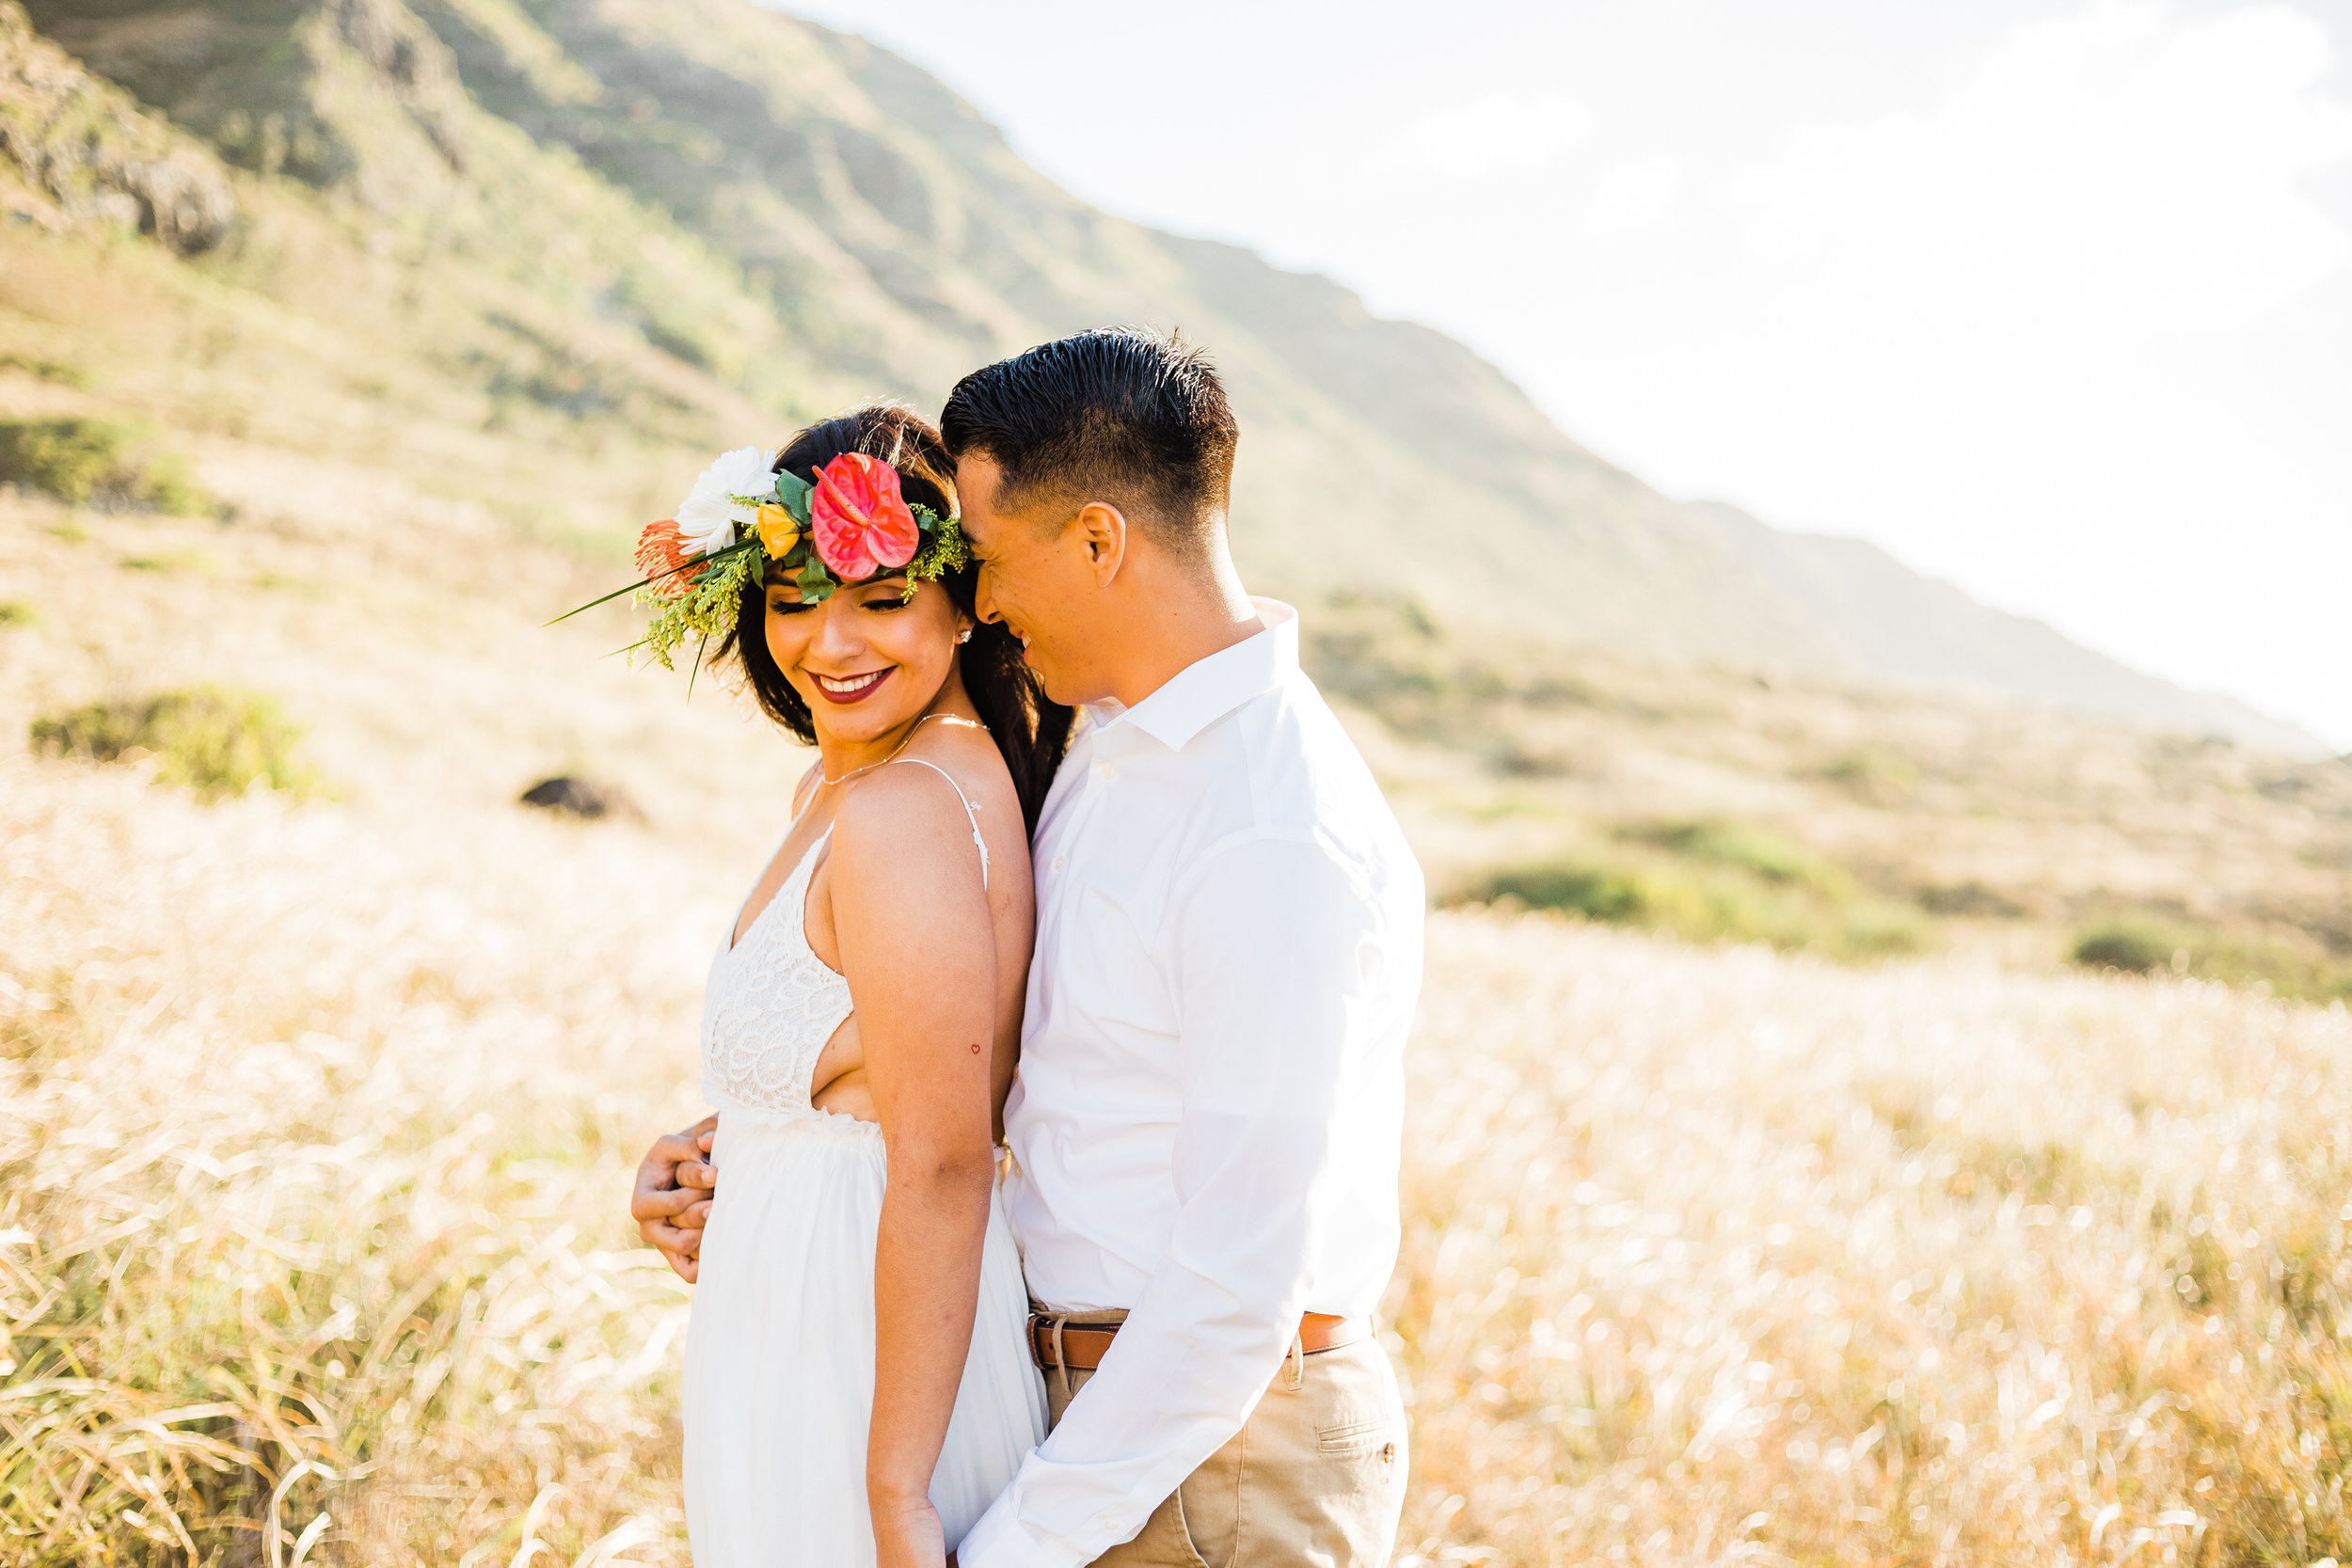 intimate-elopement-sunset-oahu-haku-2.jpg